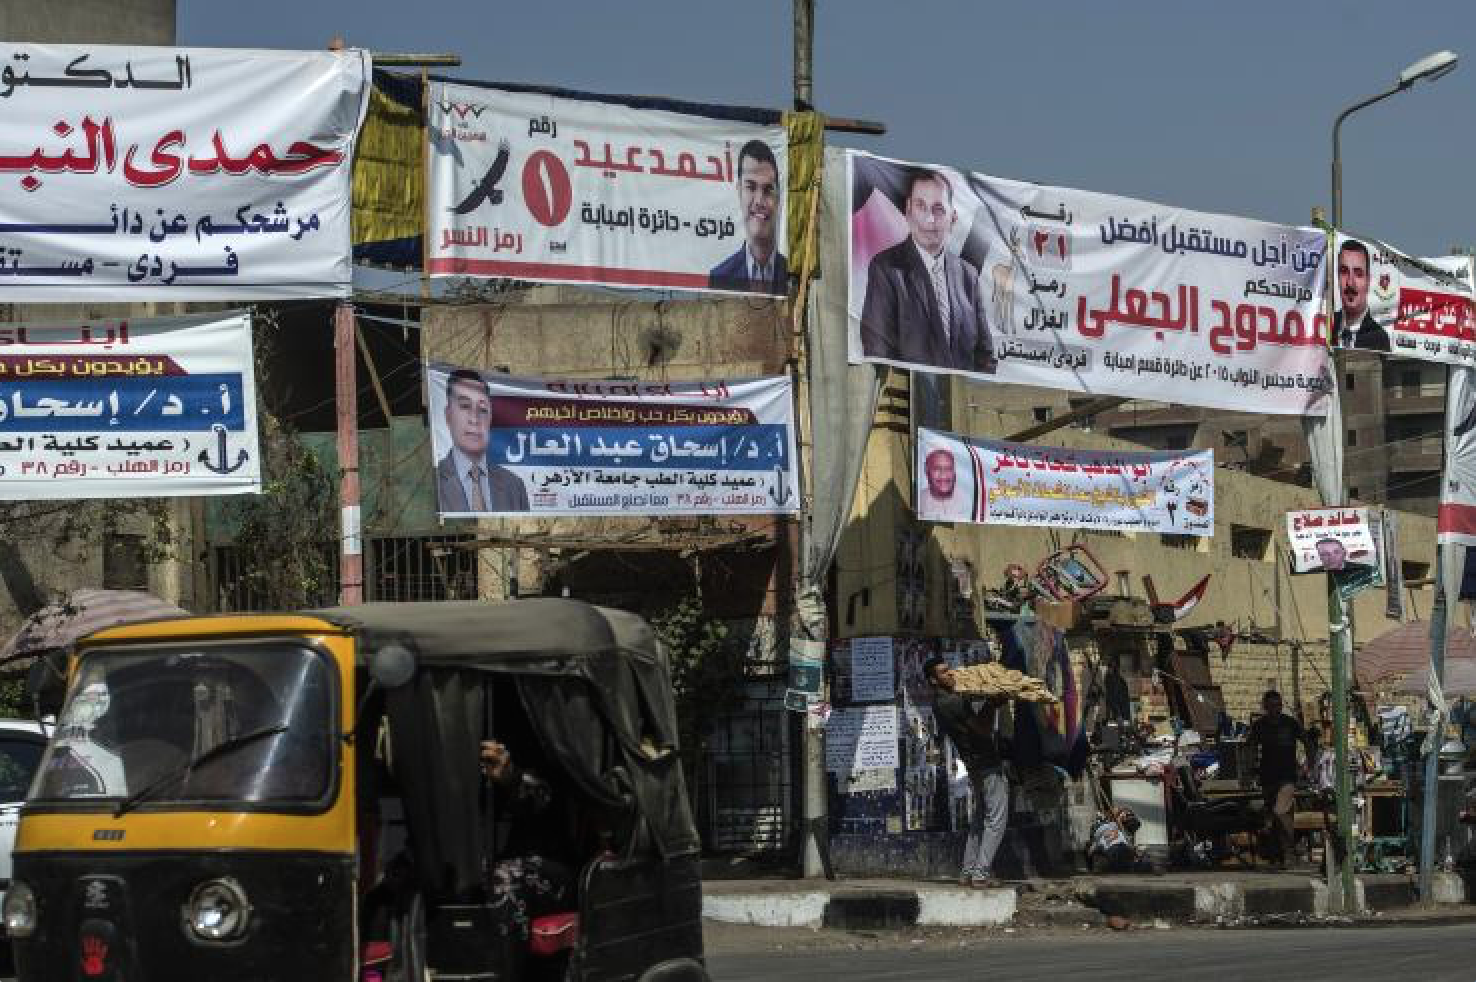 Portraits of candidates for Egypt's long awaited parliamentary elections hang in the Imbaba district of Cairo, on Oct. 15, 2015. Getty Images/AFP/KHALED DESOUKI